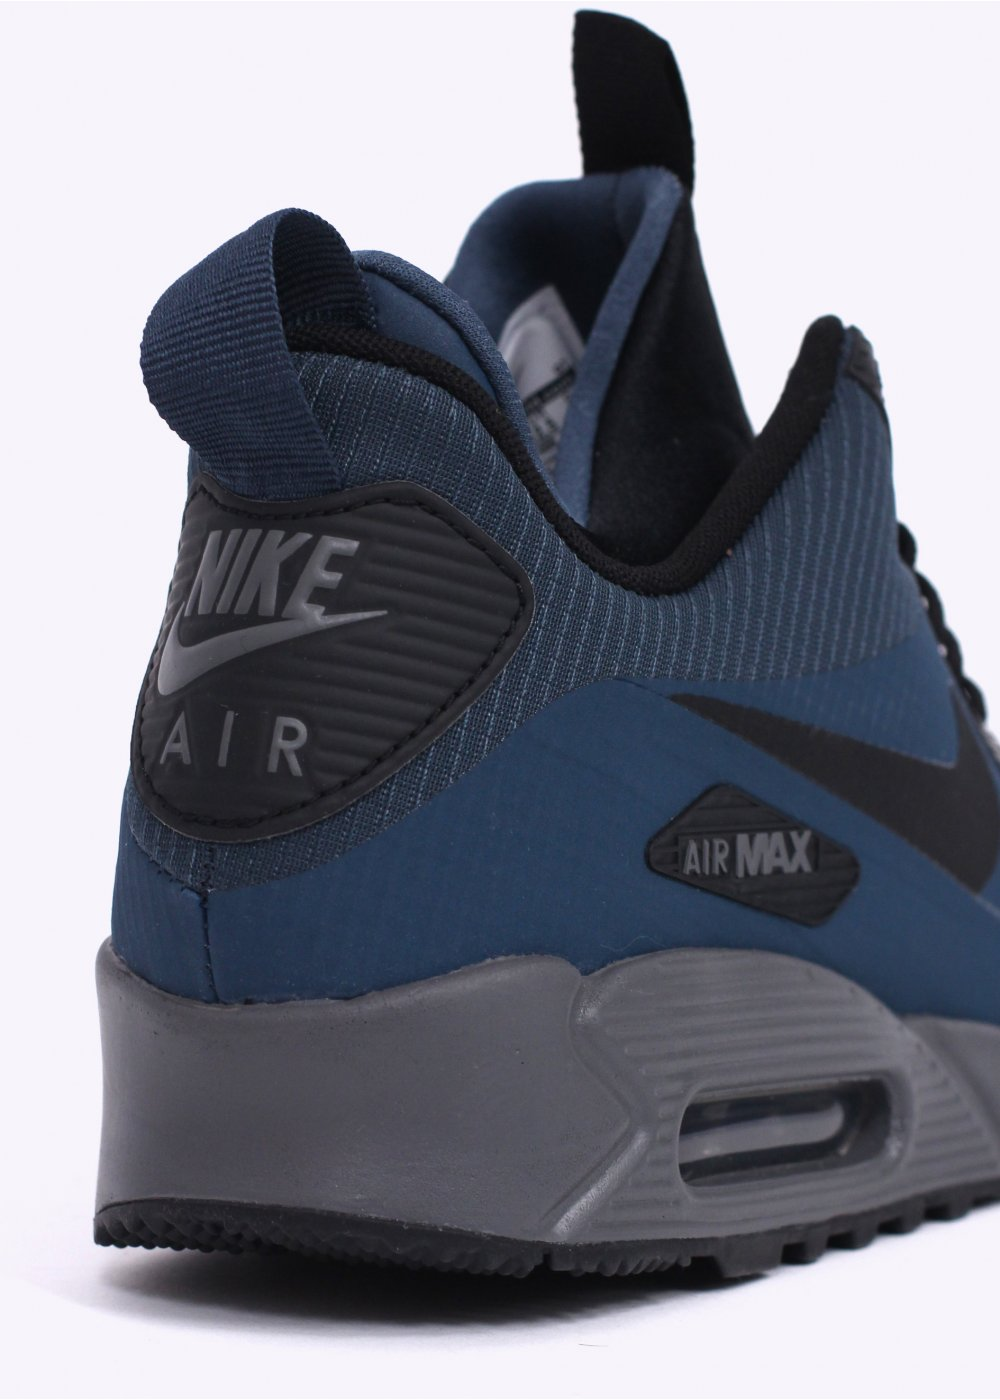 05278fd0809 Nike Air Max 90 Mid Winter Sneakerboots - Squadron Blue   Black